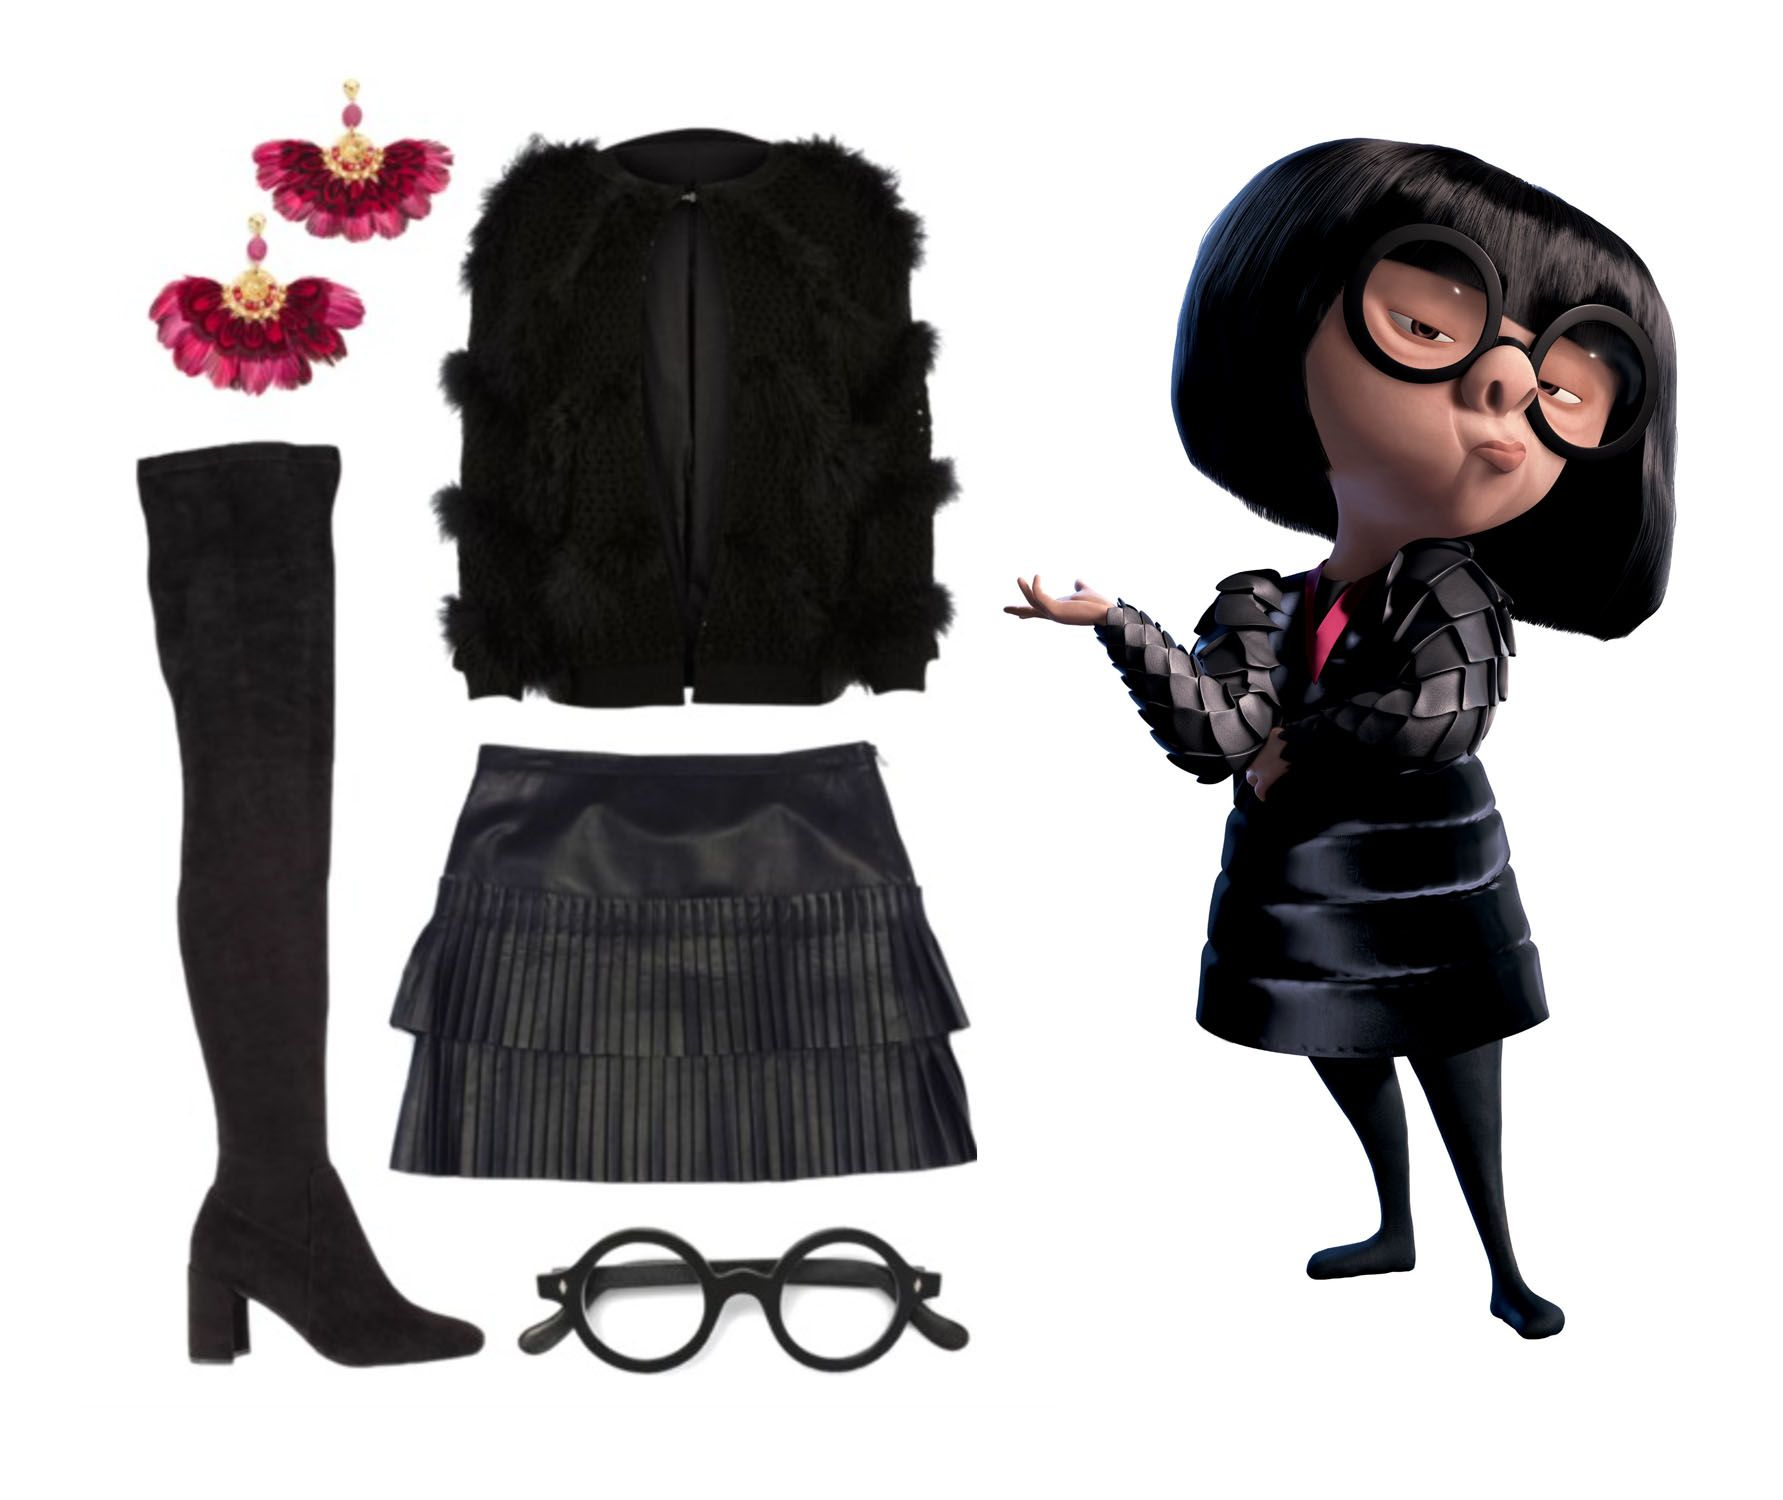 81d451015fdd29 I totally dress like Edna Mode, you guys. With a side of Merida, when I  want to add some (dark) color.